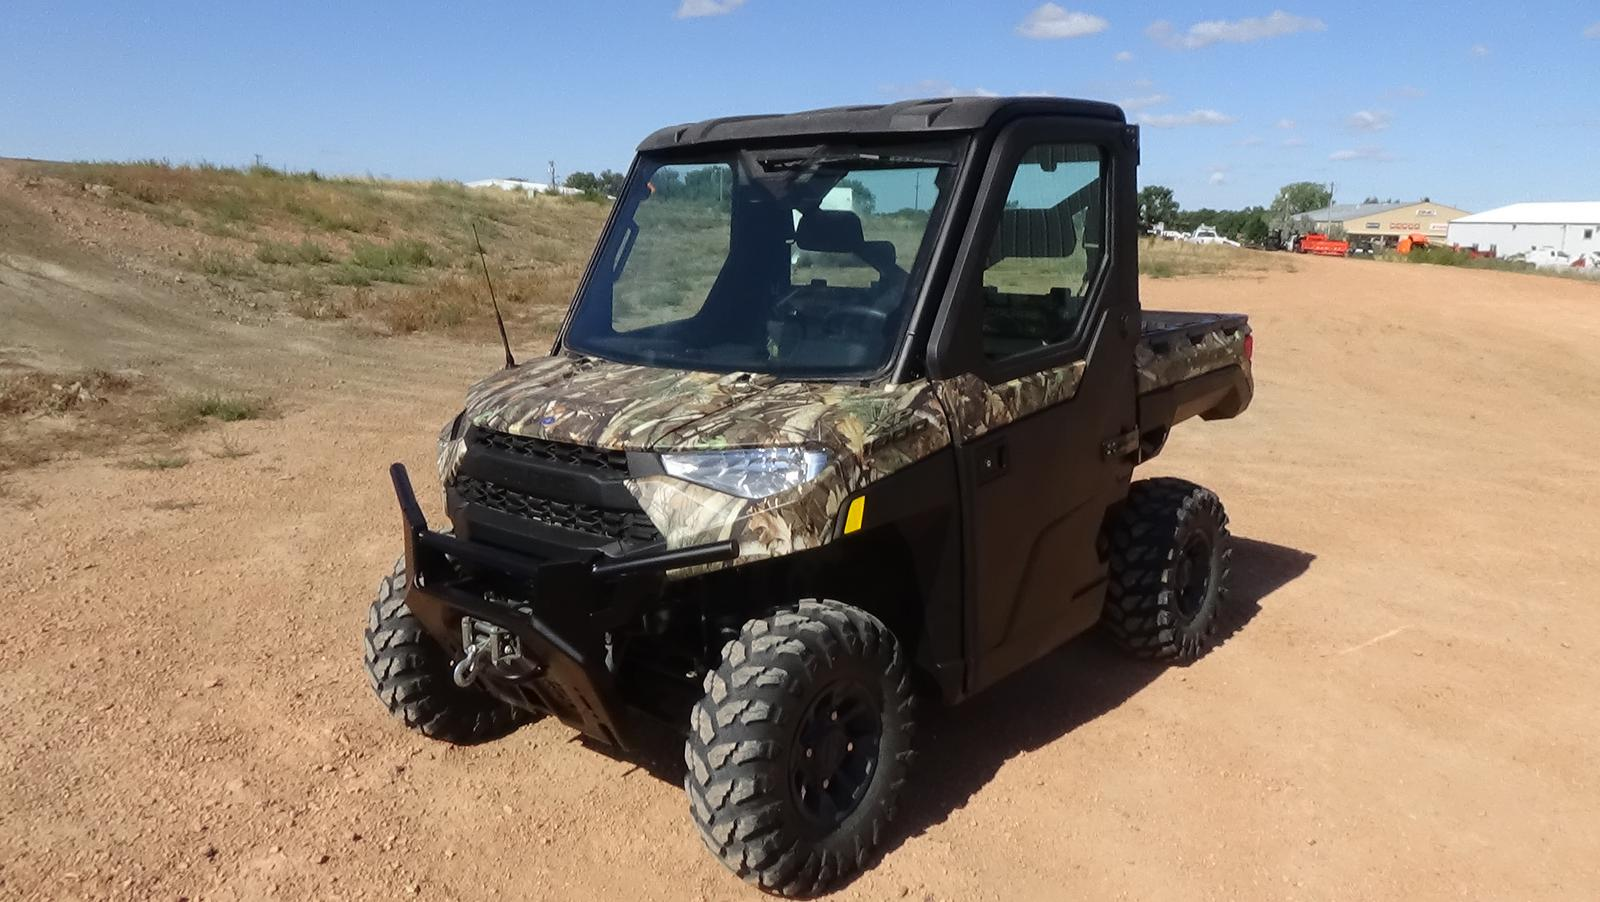 2019 polaris industries ranger xp 1000 eps ns- camo